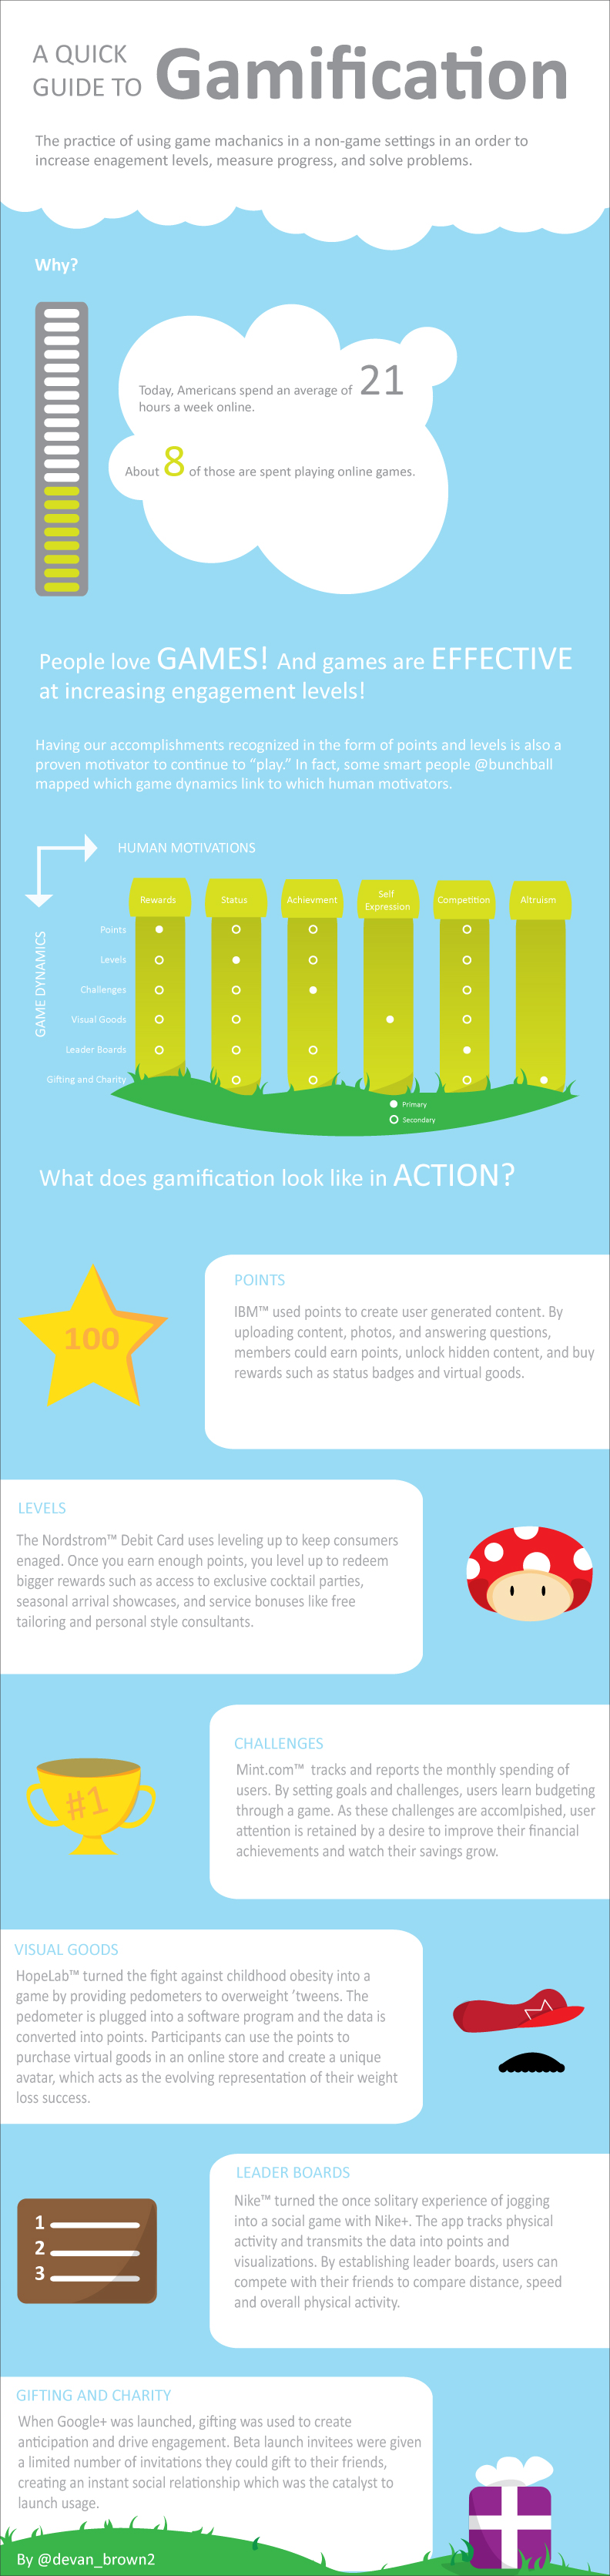 A gamification infographic by Devan Brown @devan_brown2